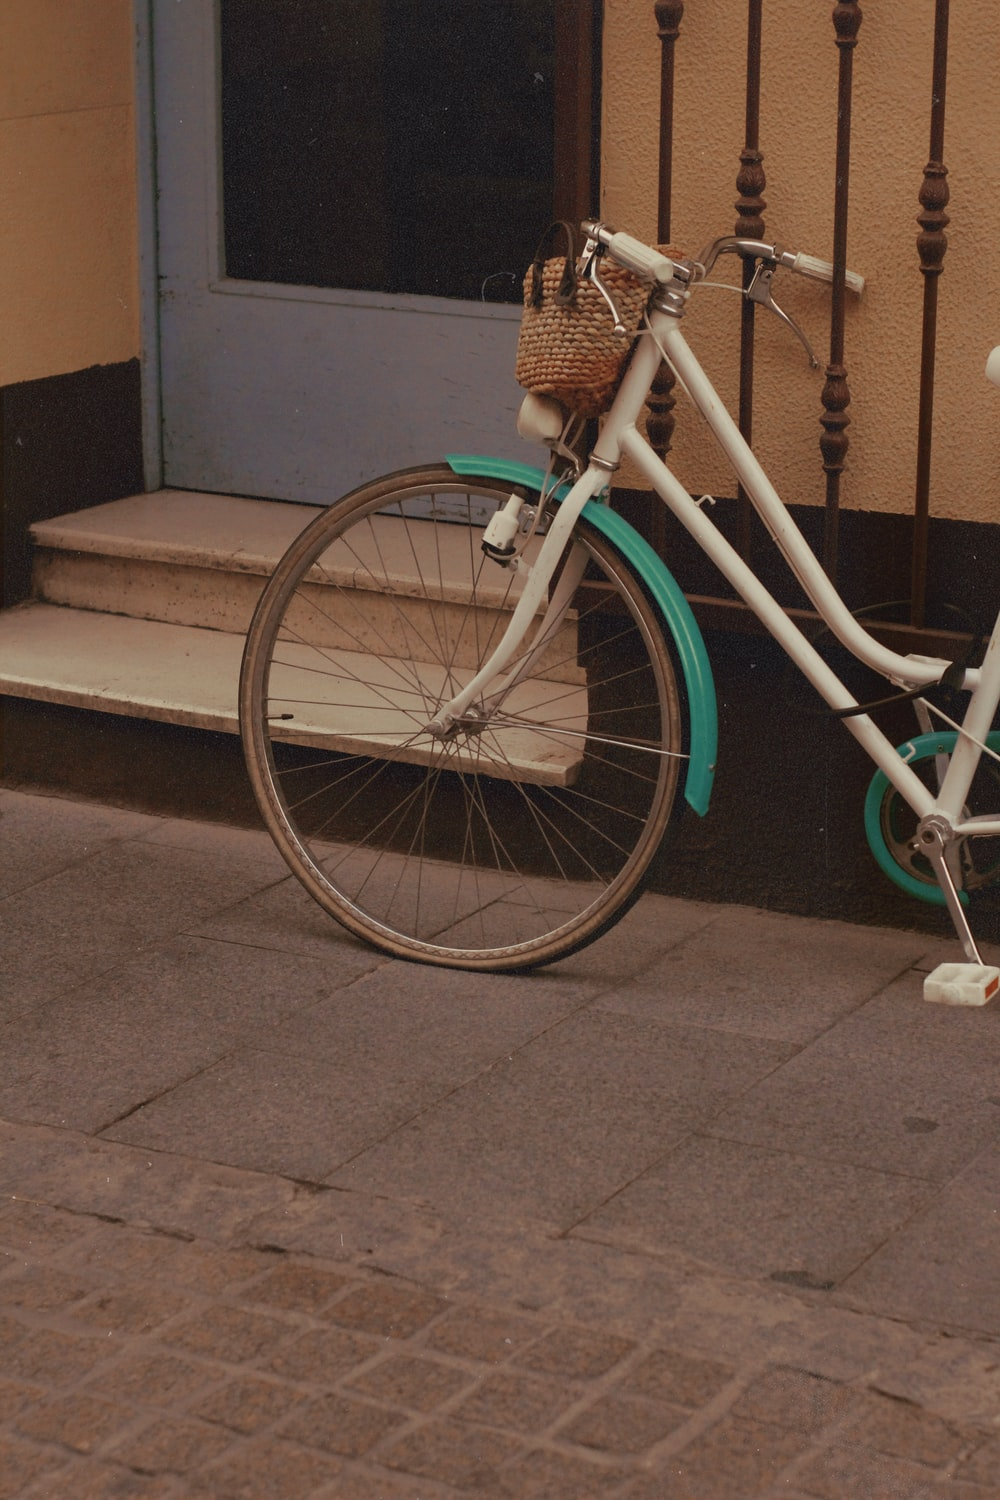 teal city bike parked beside brown concrete wall